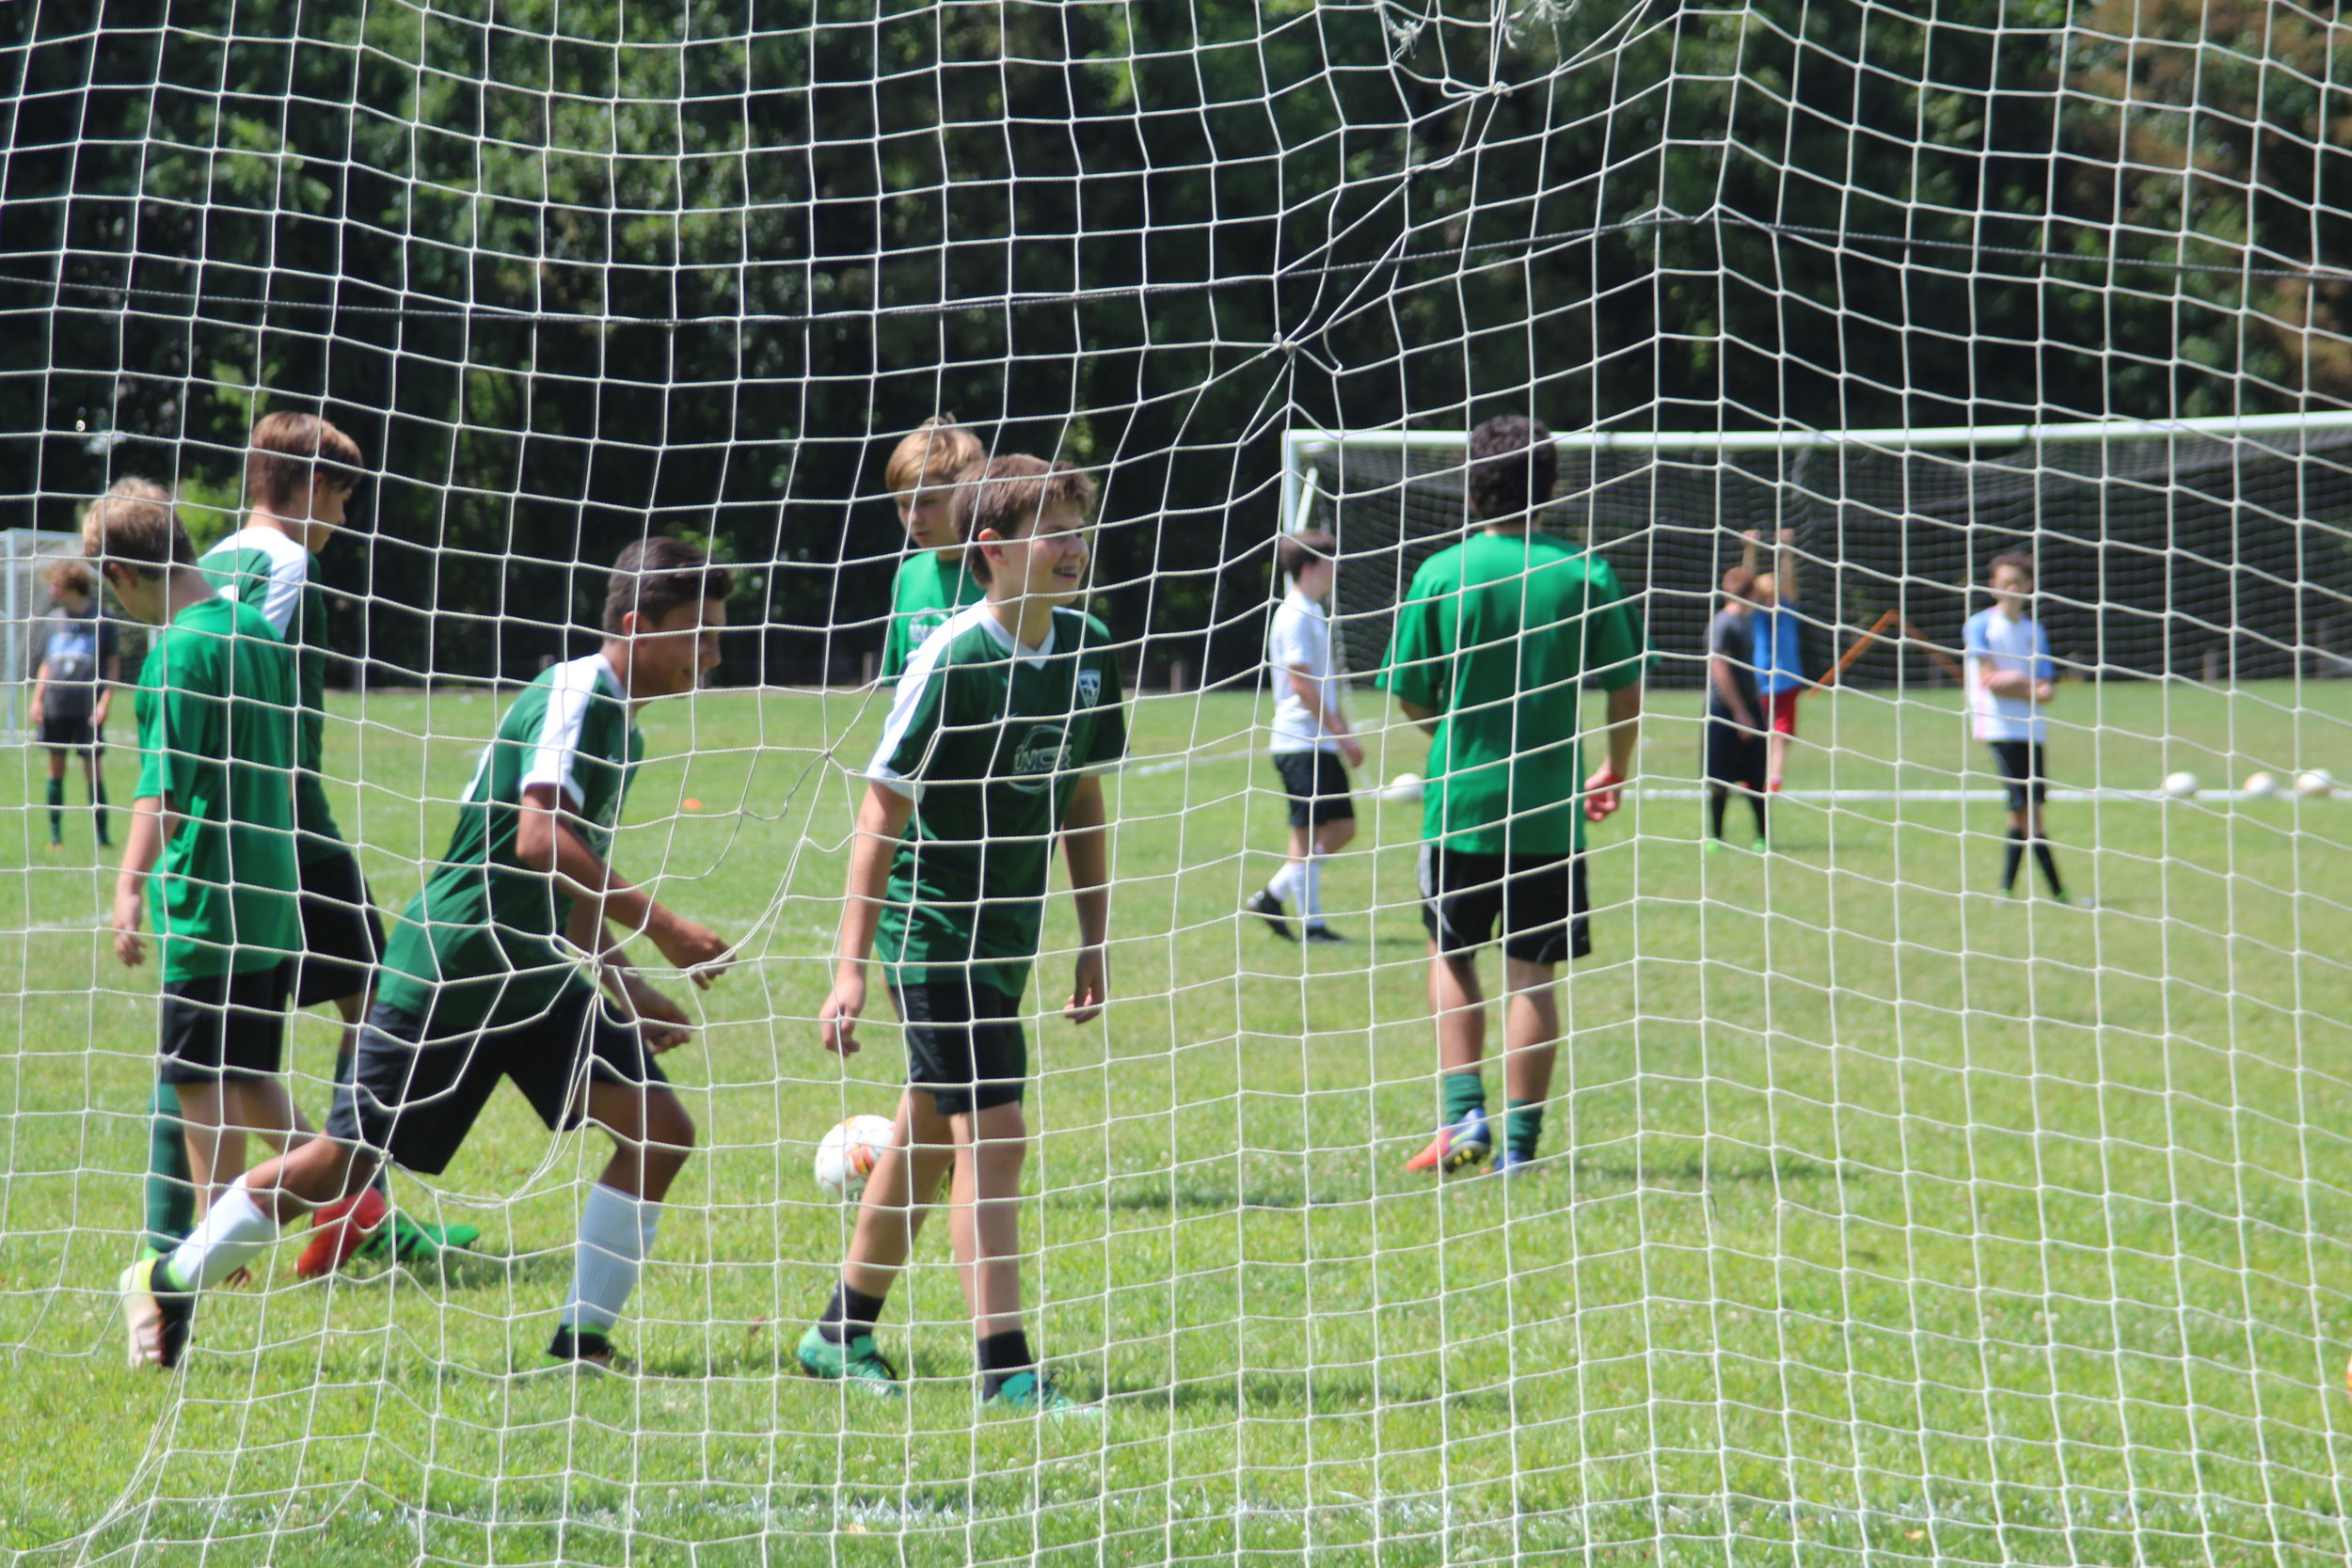 Three Day Camp - Each camp day will feature different daily topics which will include a lot of technical work, possession based drills, and match like situations to create game realistic scenarios. The camps will help keep players active during the summer, whilst preparing them for their Fall season. Groups will be decided based on age/ability. Limited spots available.Dates - 6/25, 6/26, 6/27Location - Asheville SchoolAges/Time - 9-17 @ 1-4pmPrice - Shield Players - $100. Non-Shield Players - $150. Includes Shield Camp Shirt